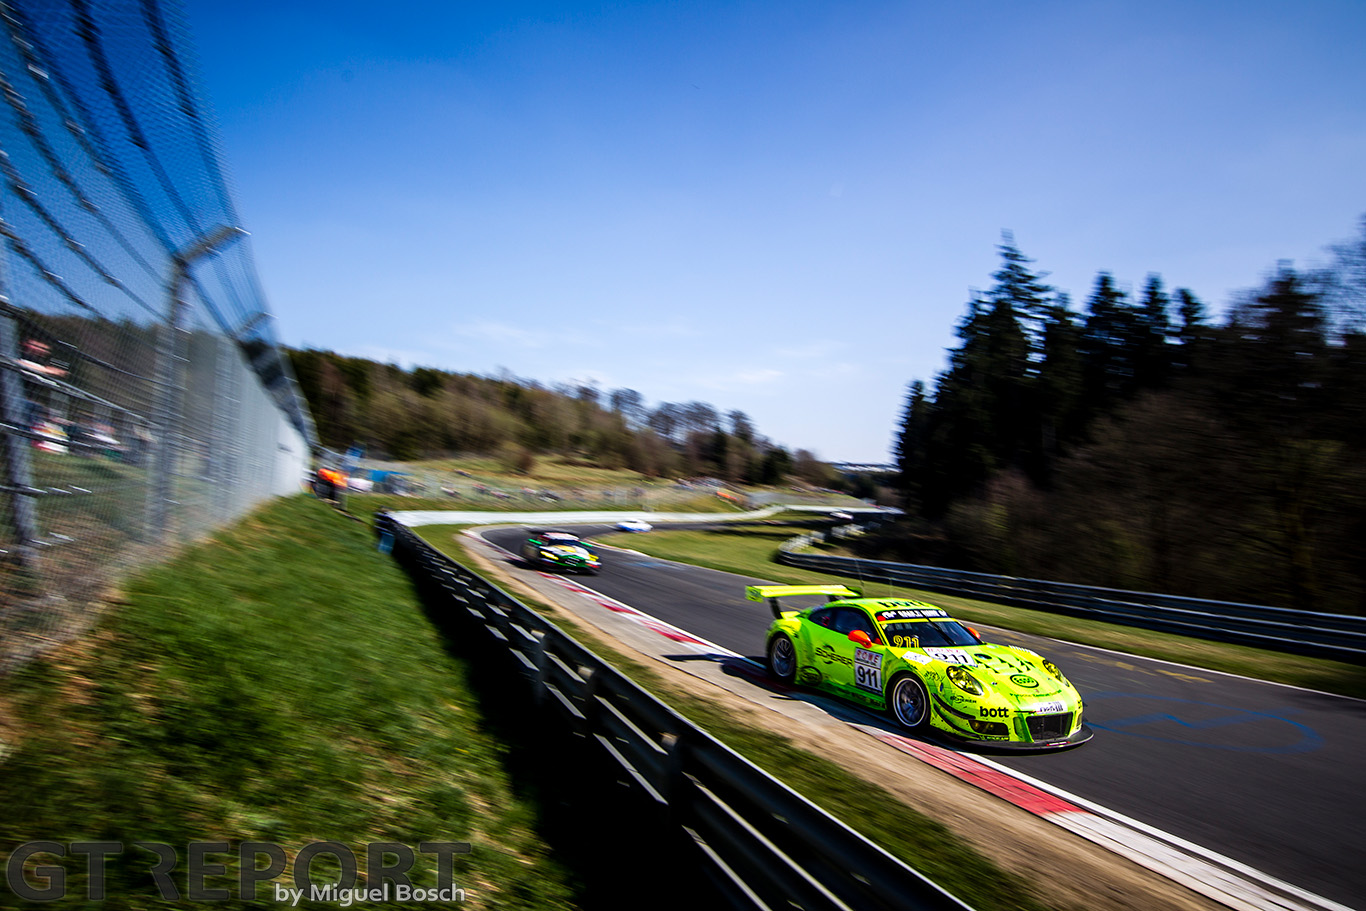 VLN2 race report: Take two